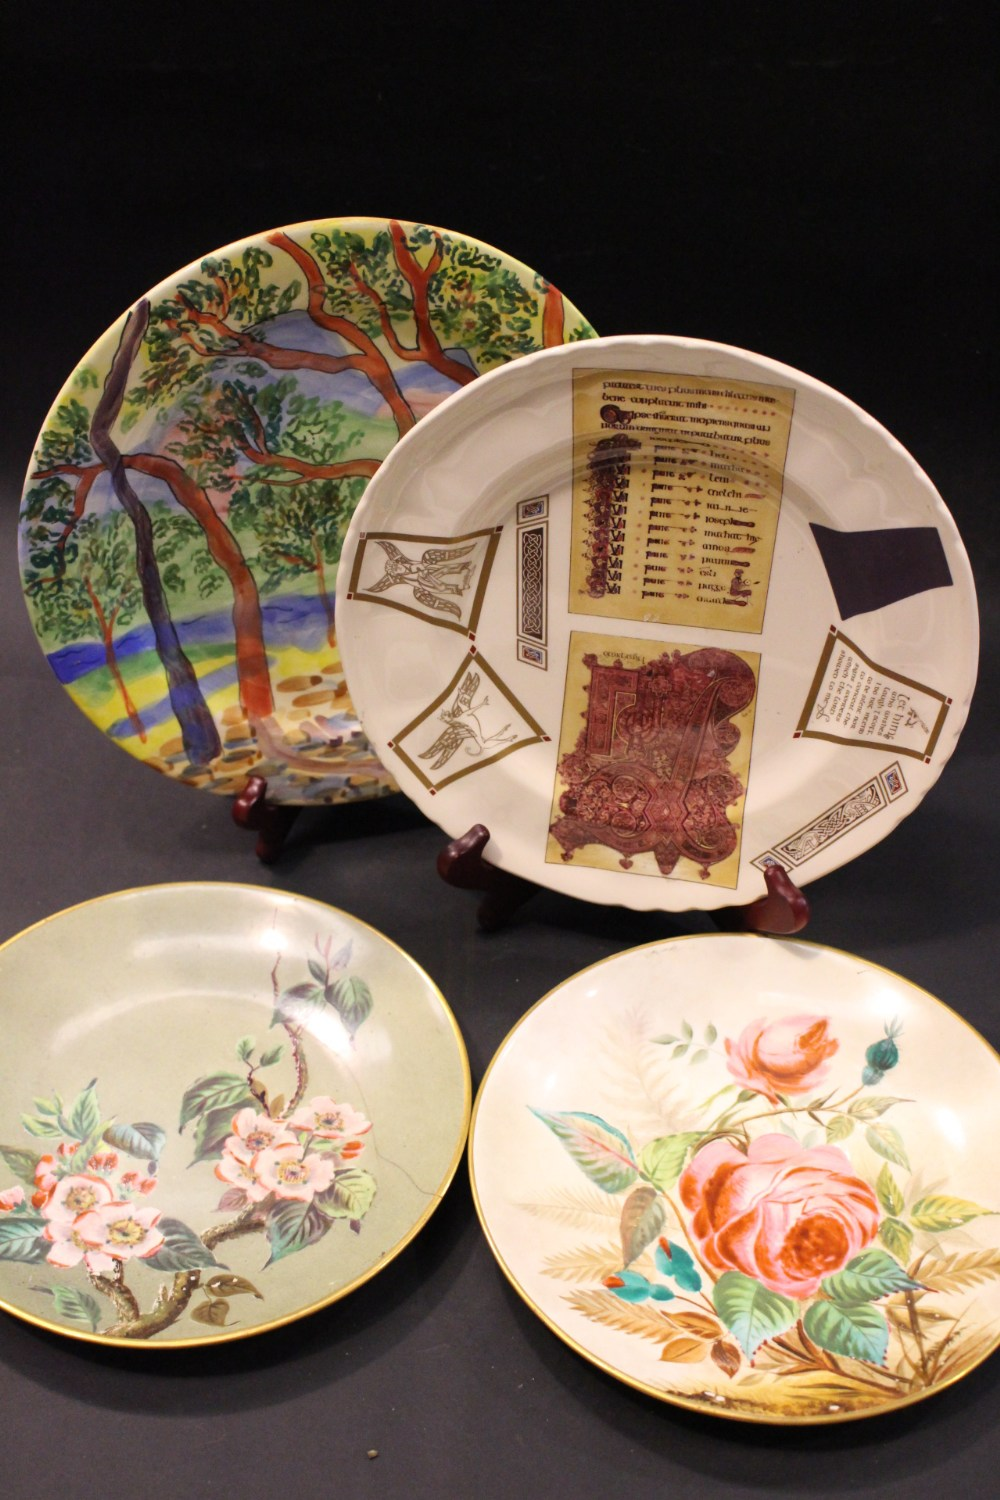 Lot 293 - A COLLECTION OF PLATES, includes; (i) A Suzanne Kathuda signed plate - Royal Academy 1991 stamp